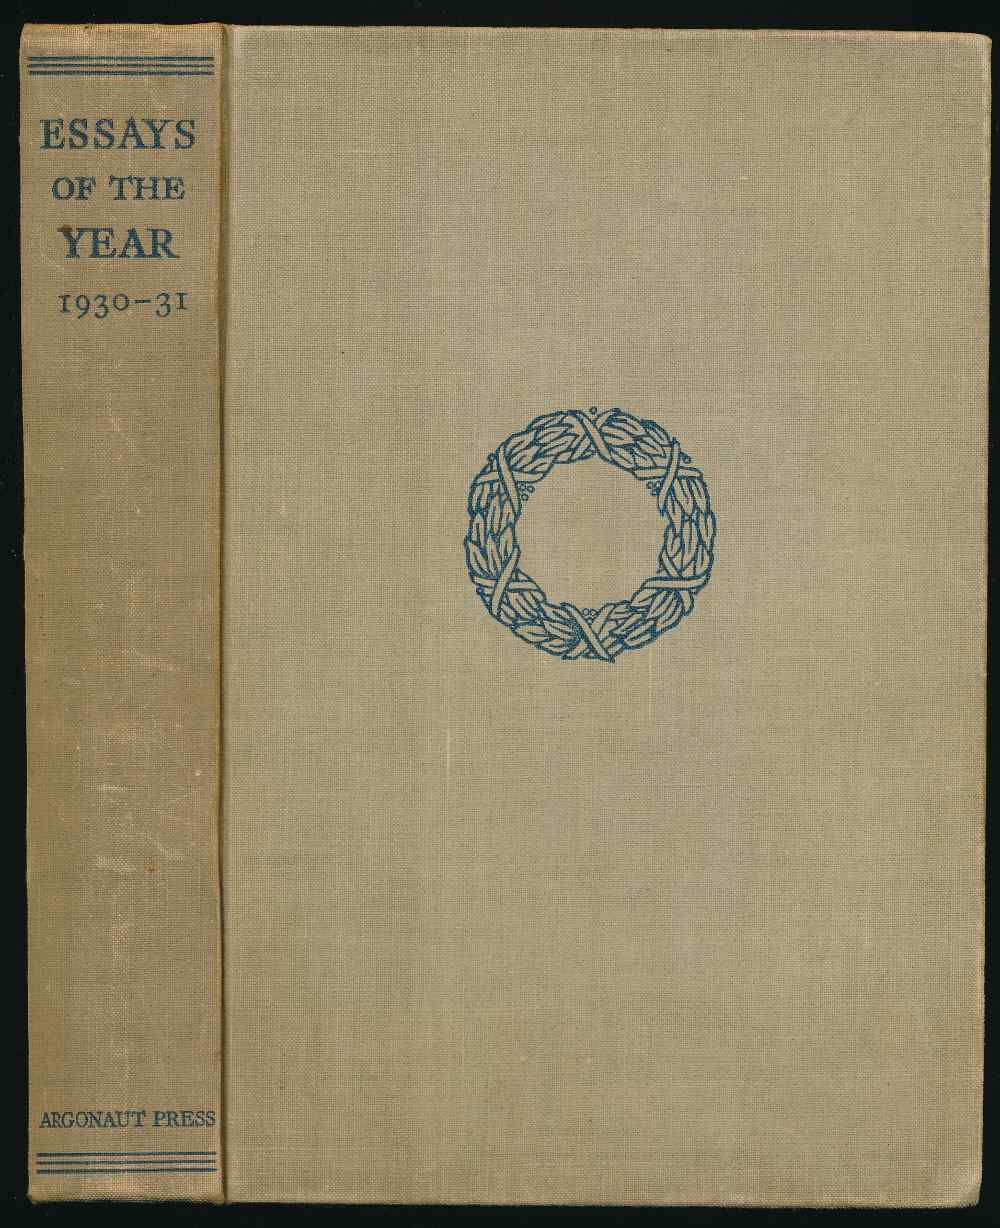 Essays of the year 1930-31